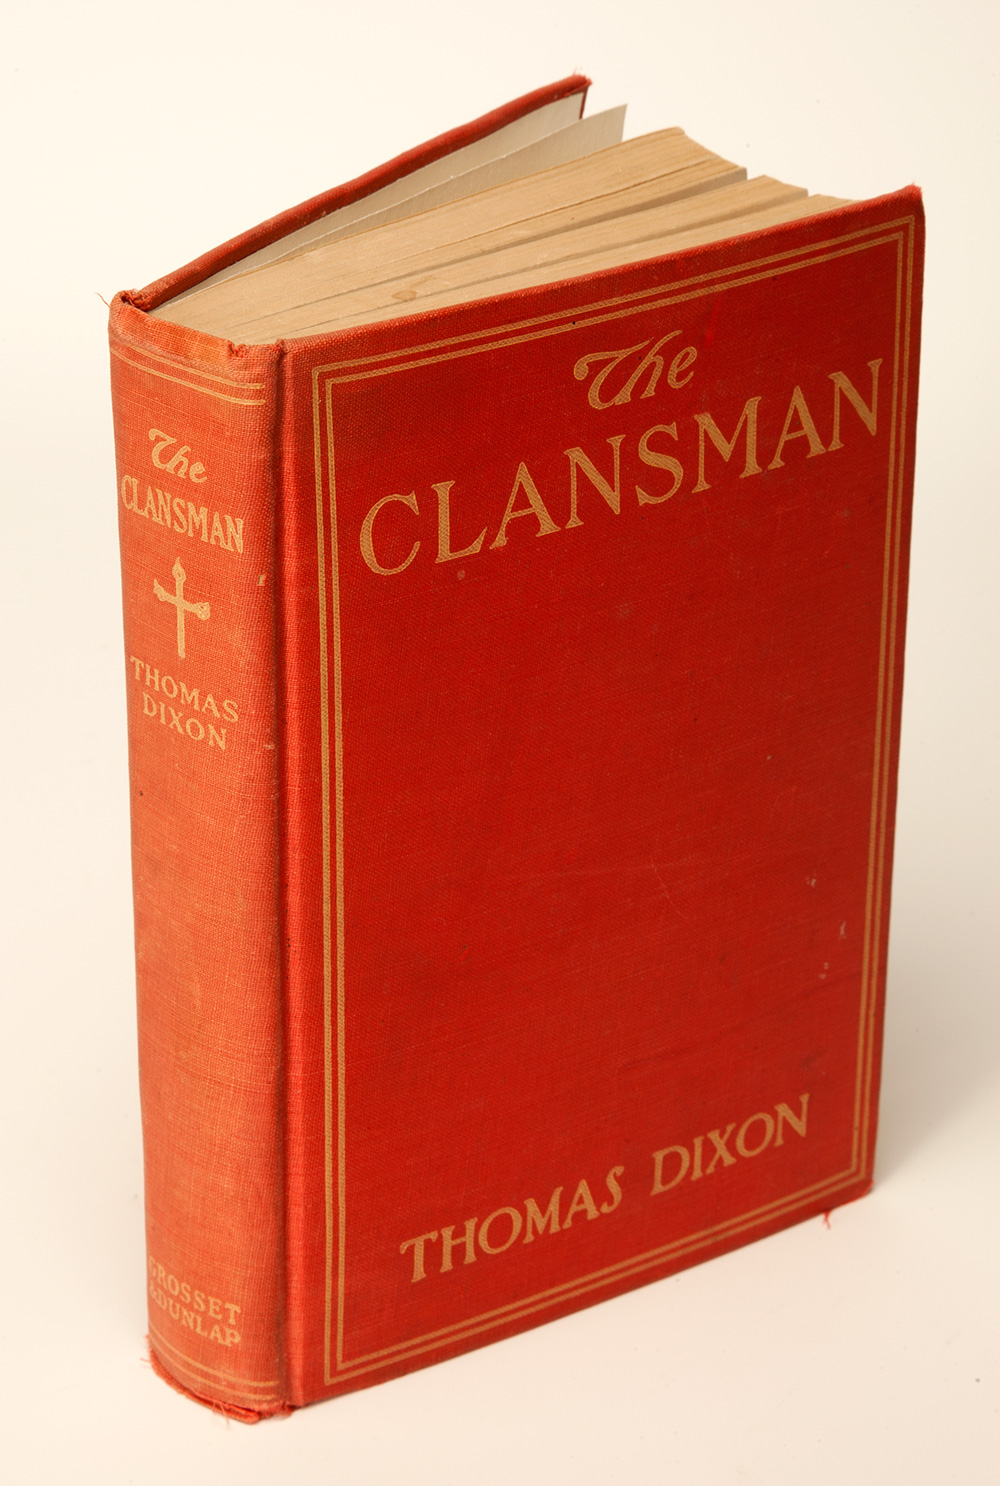 The Clansman (1915): courtesy James DArc.